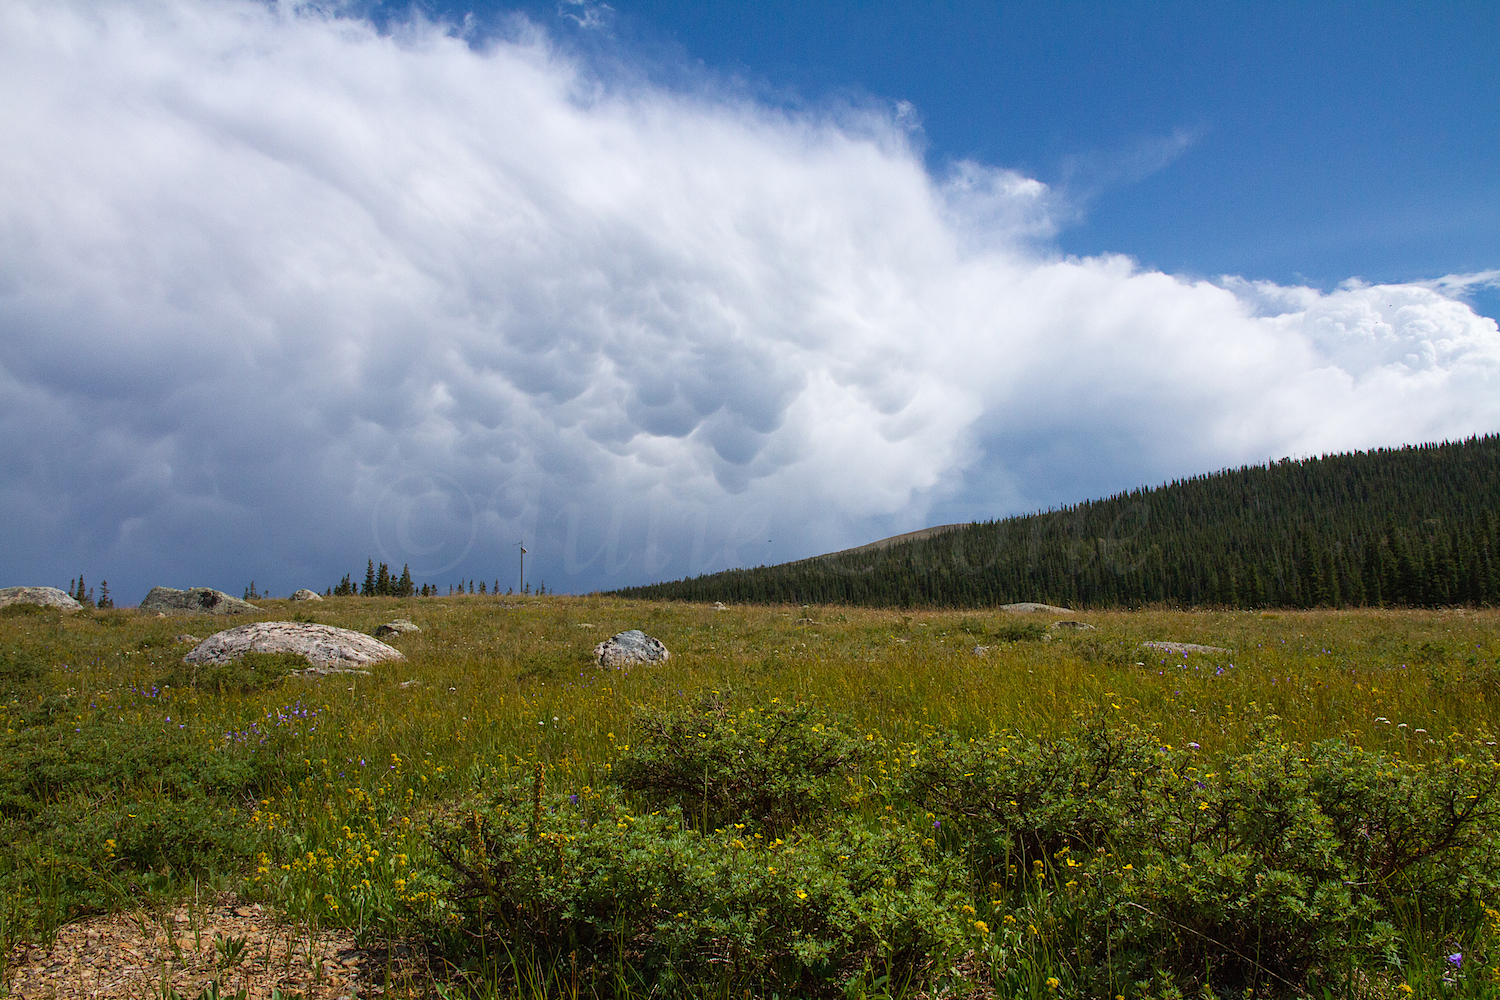 Storm approaching Brainard Lake, Image #4138